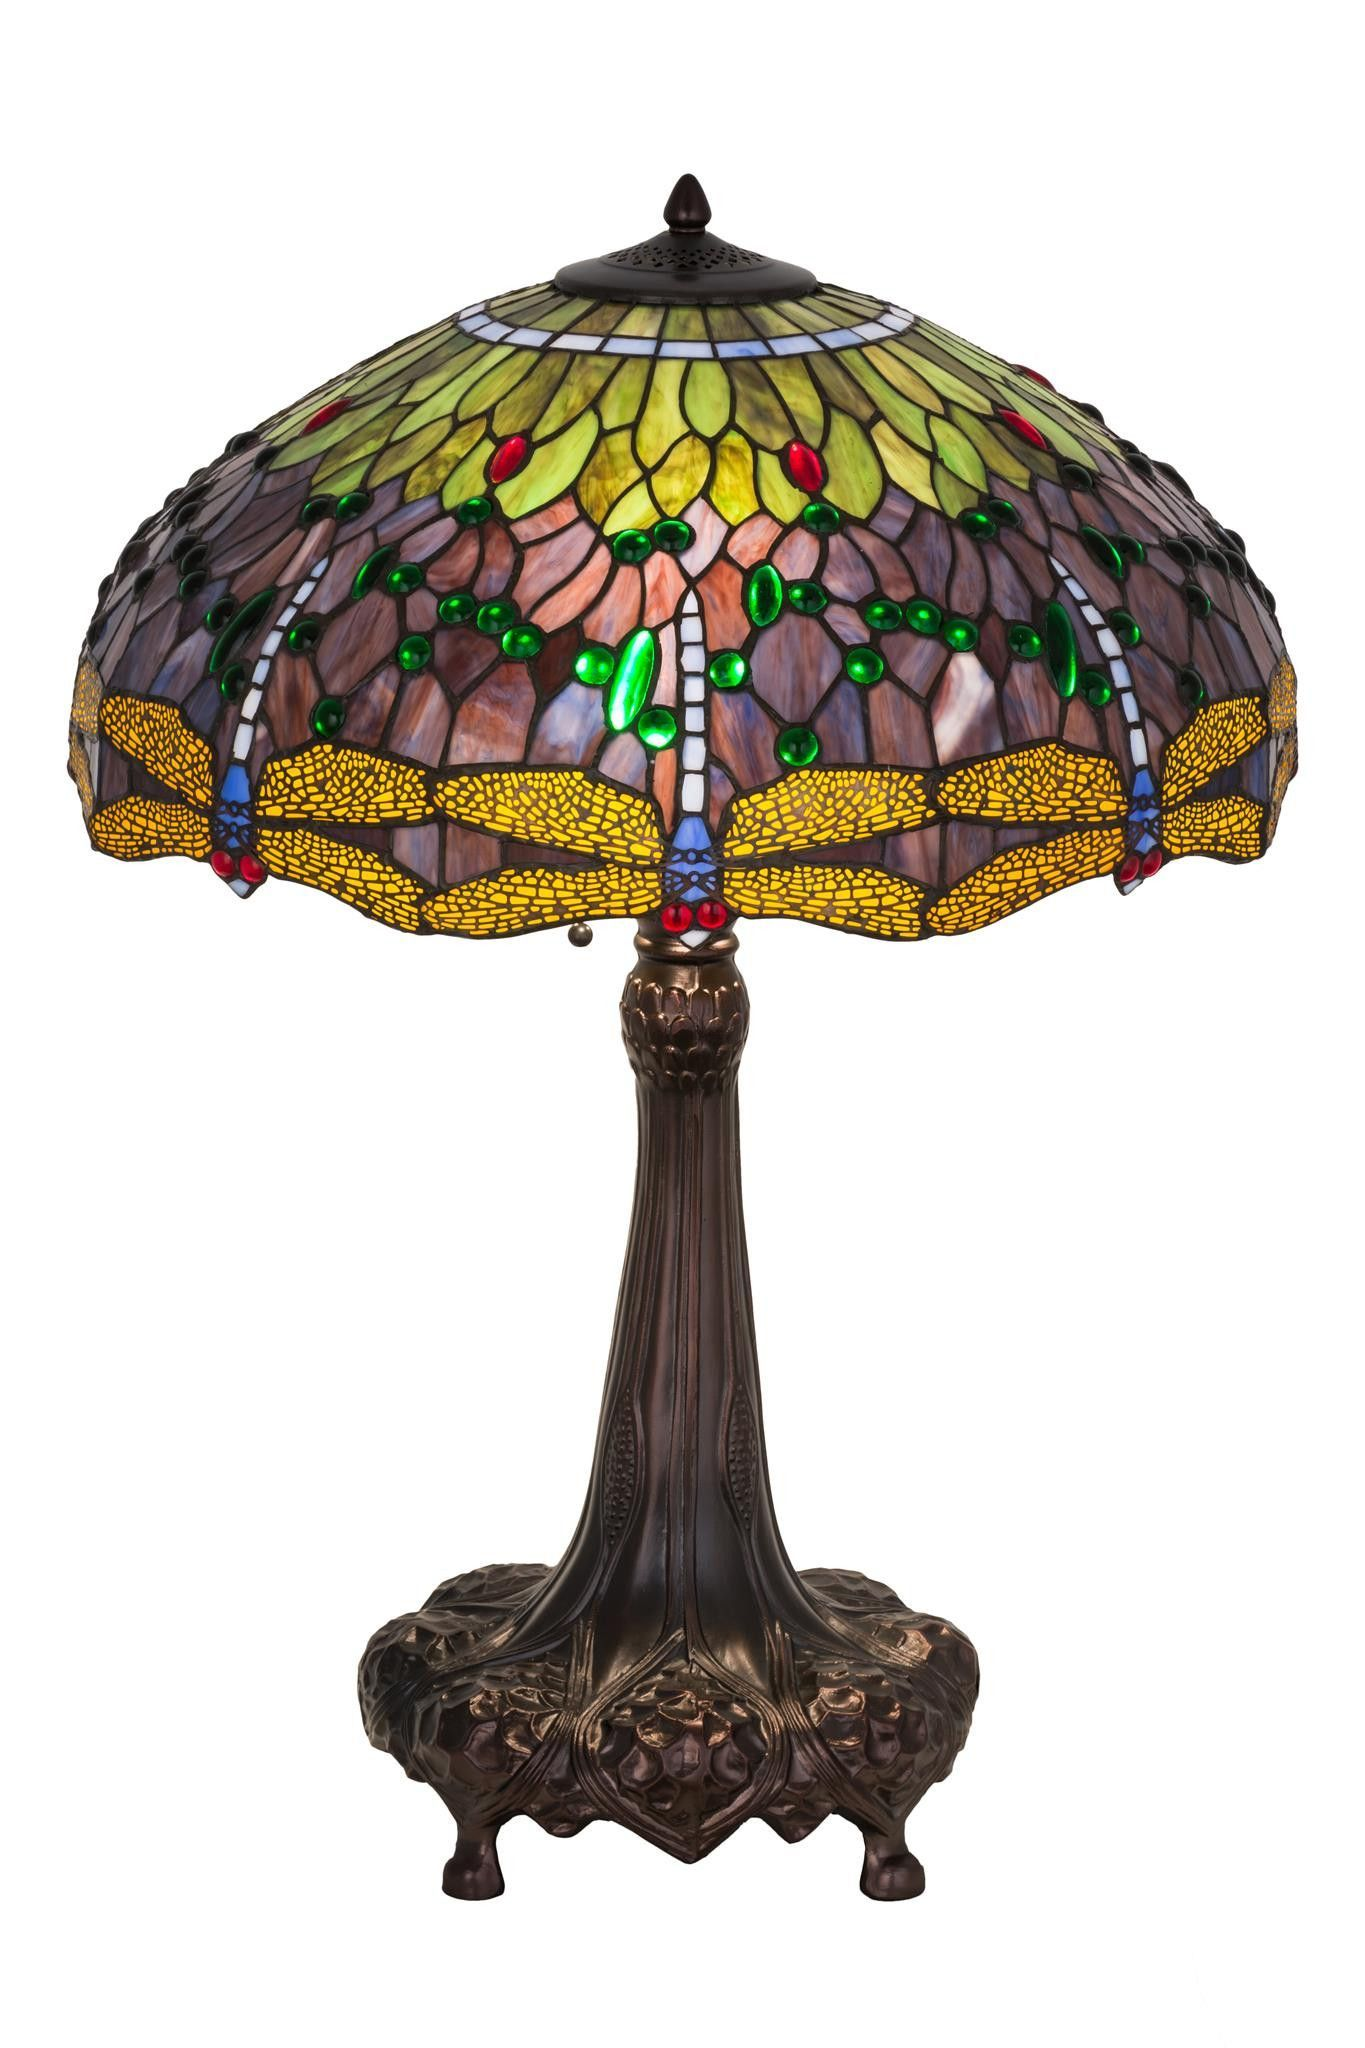 32 Inch H Tiffany Hanginghead Dragonfly Table Lamp